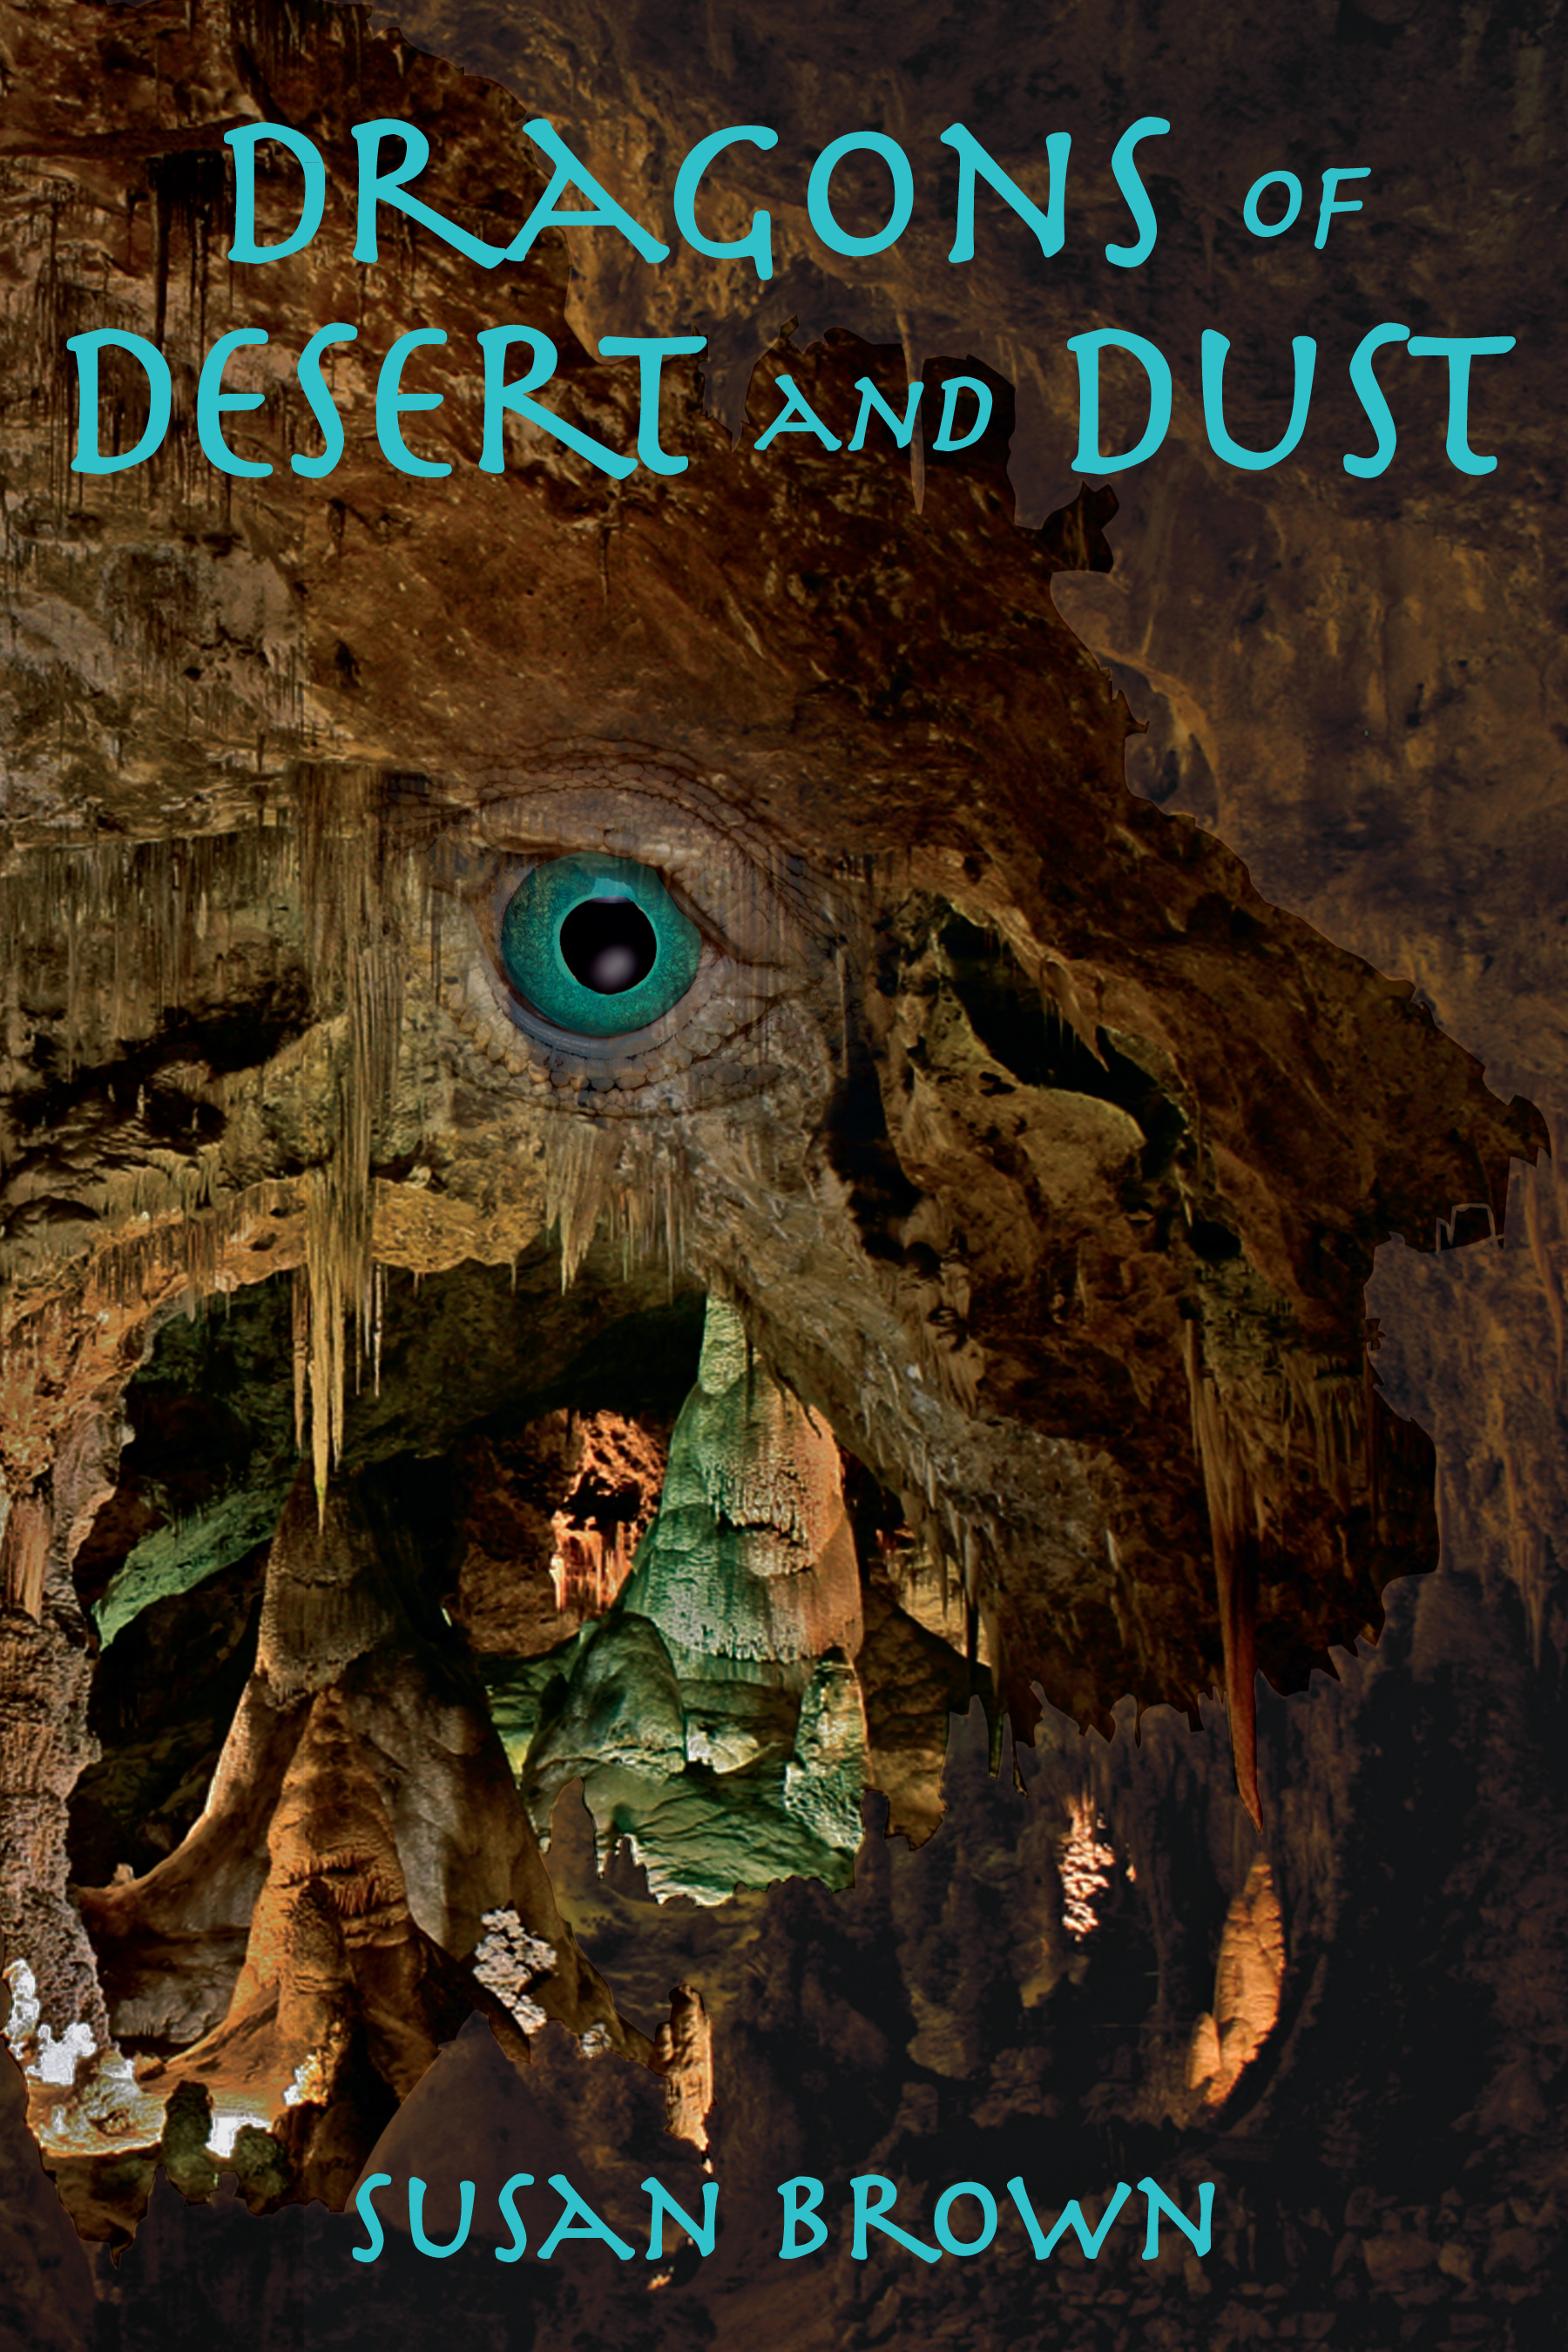 Dragons of Desert and Dust Susan Brown